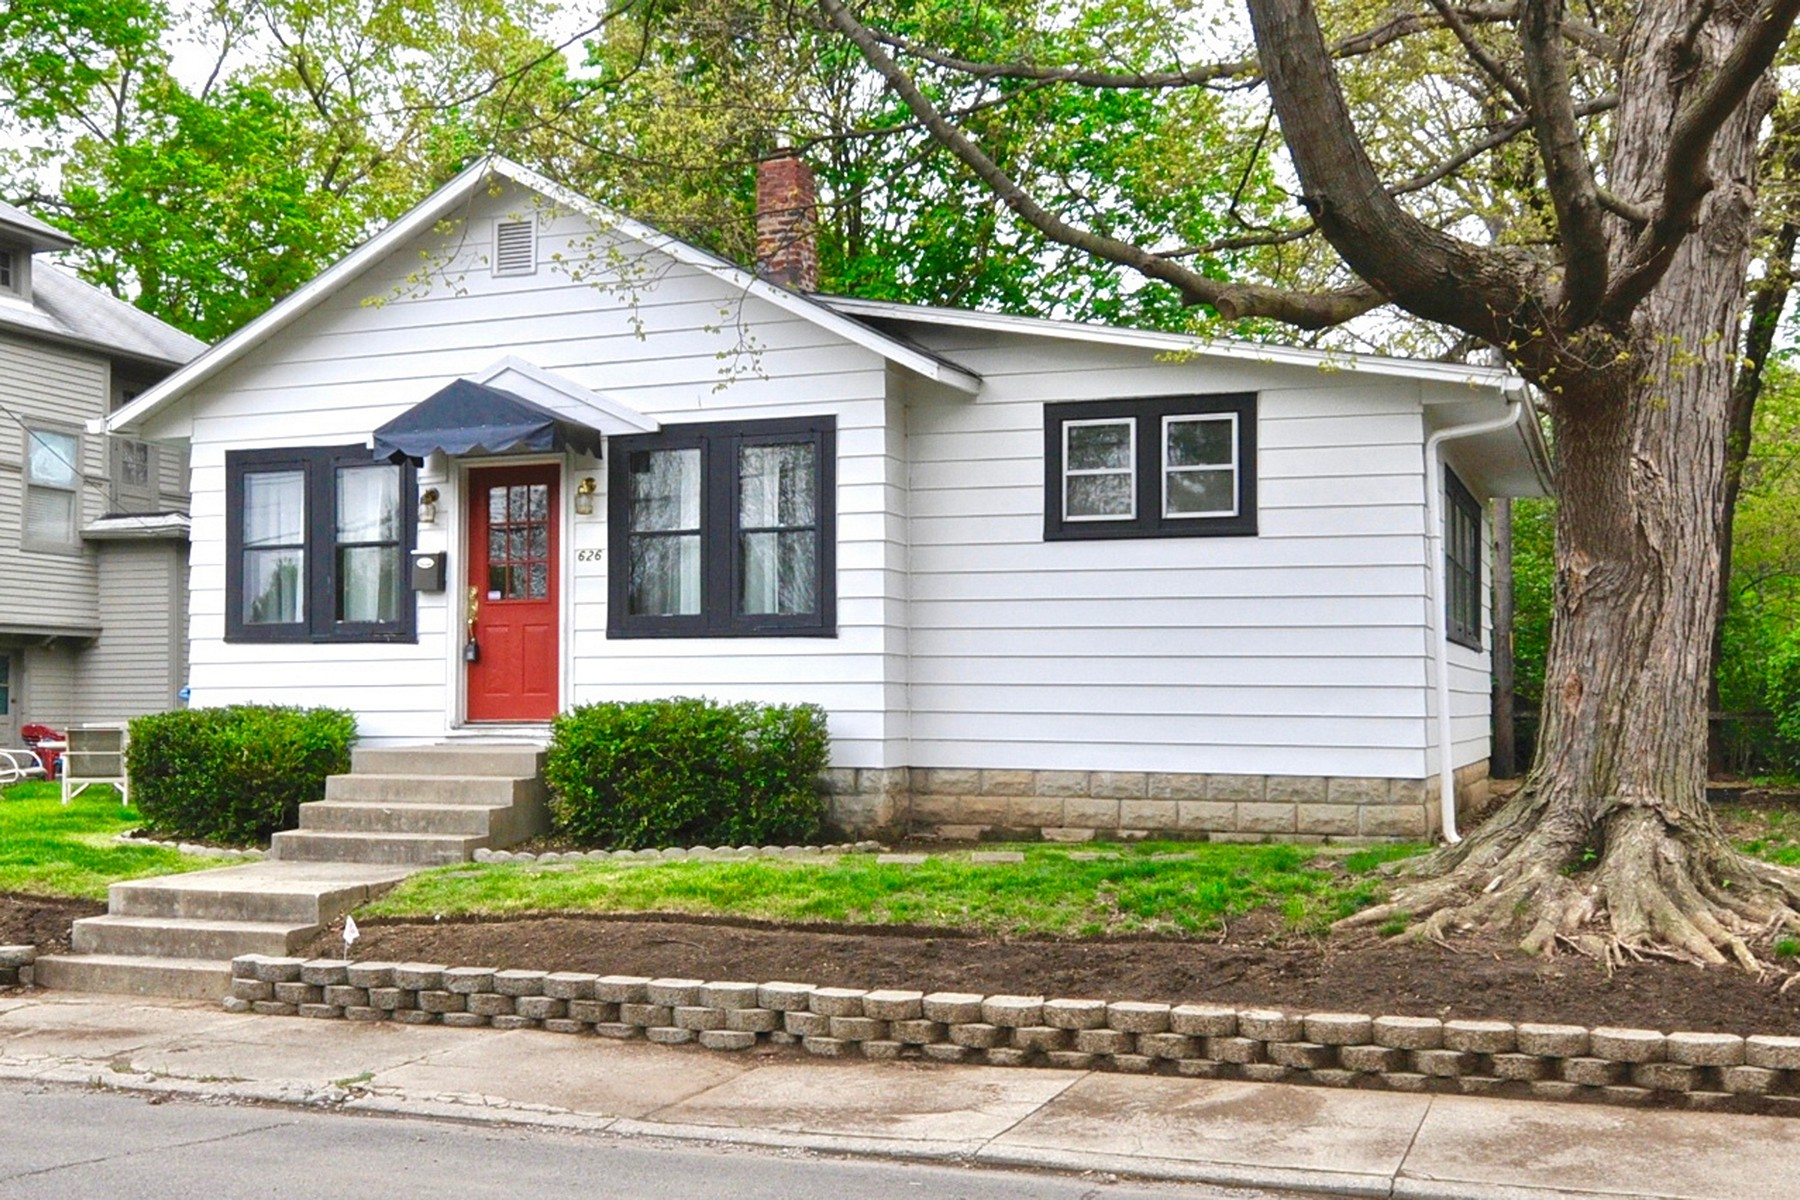 Single Family Home for Sale at Fantastic Broad Ripple Location 626 E. 61st Street Indianapolis, Indiana 46220 United States